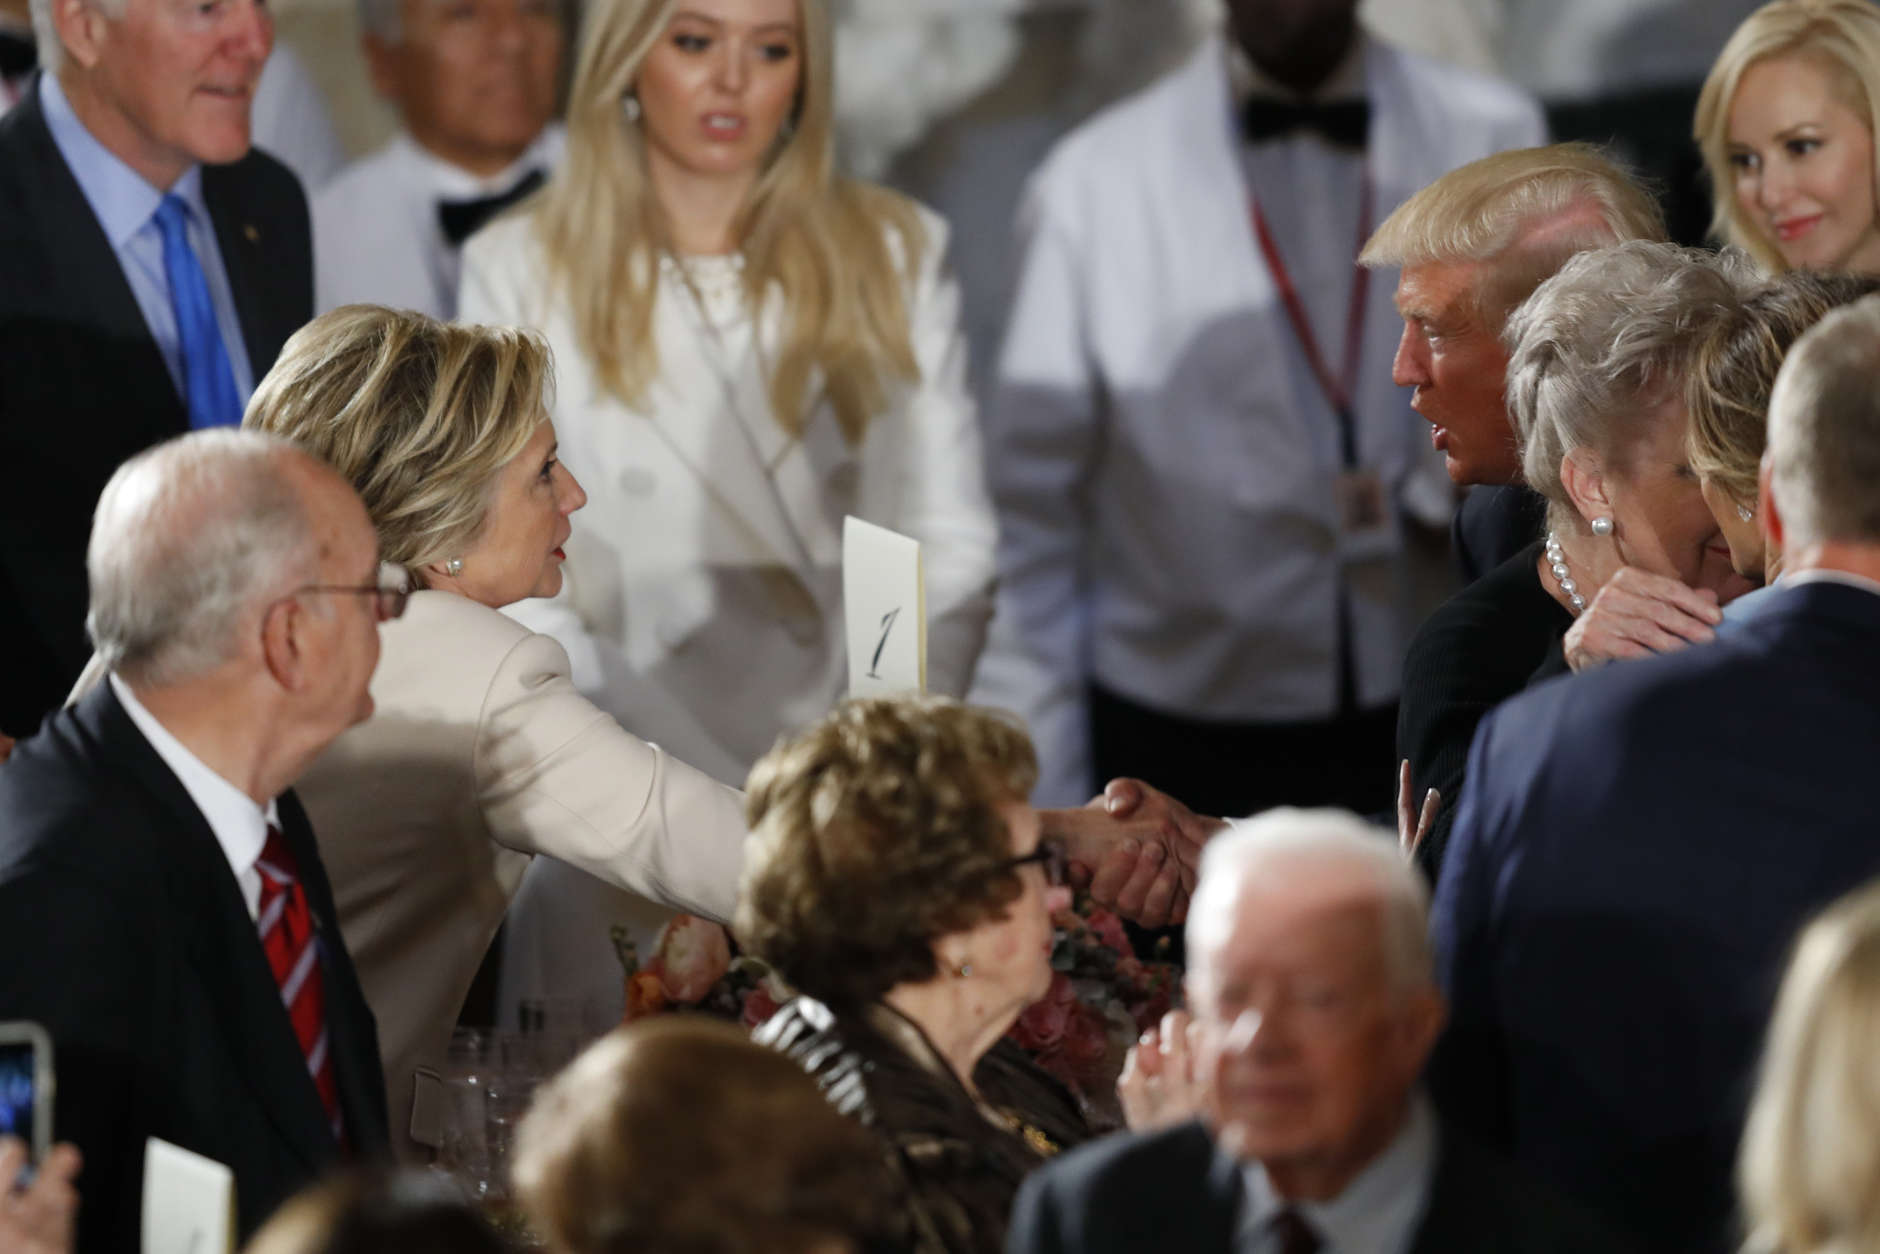 WASHINGTON, DC - JANUARY 20:  President Donald Trump greets Hillary Clinton at the Inaugural Luncheon in the US Capitol January 20, 2017 in Washington, DC. President Trump will attend the luncheon along with other dignitaries after being sworn in as the 45th President of the United States. (Photo by Aaron P. Bernstein/Getty Images)